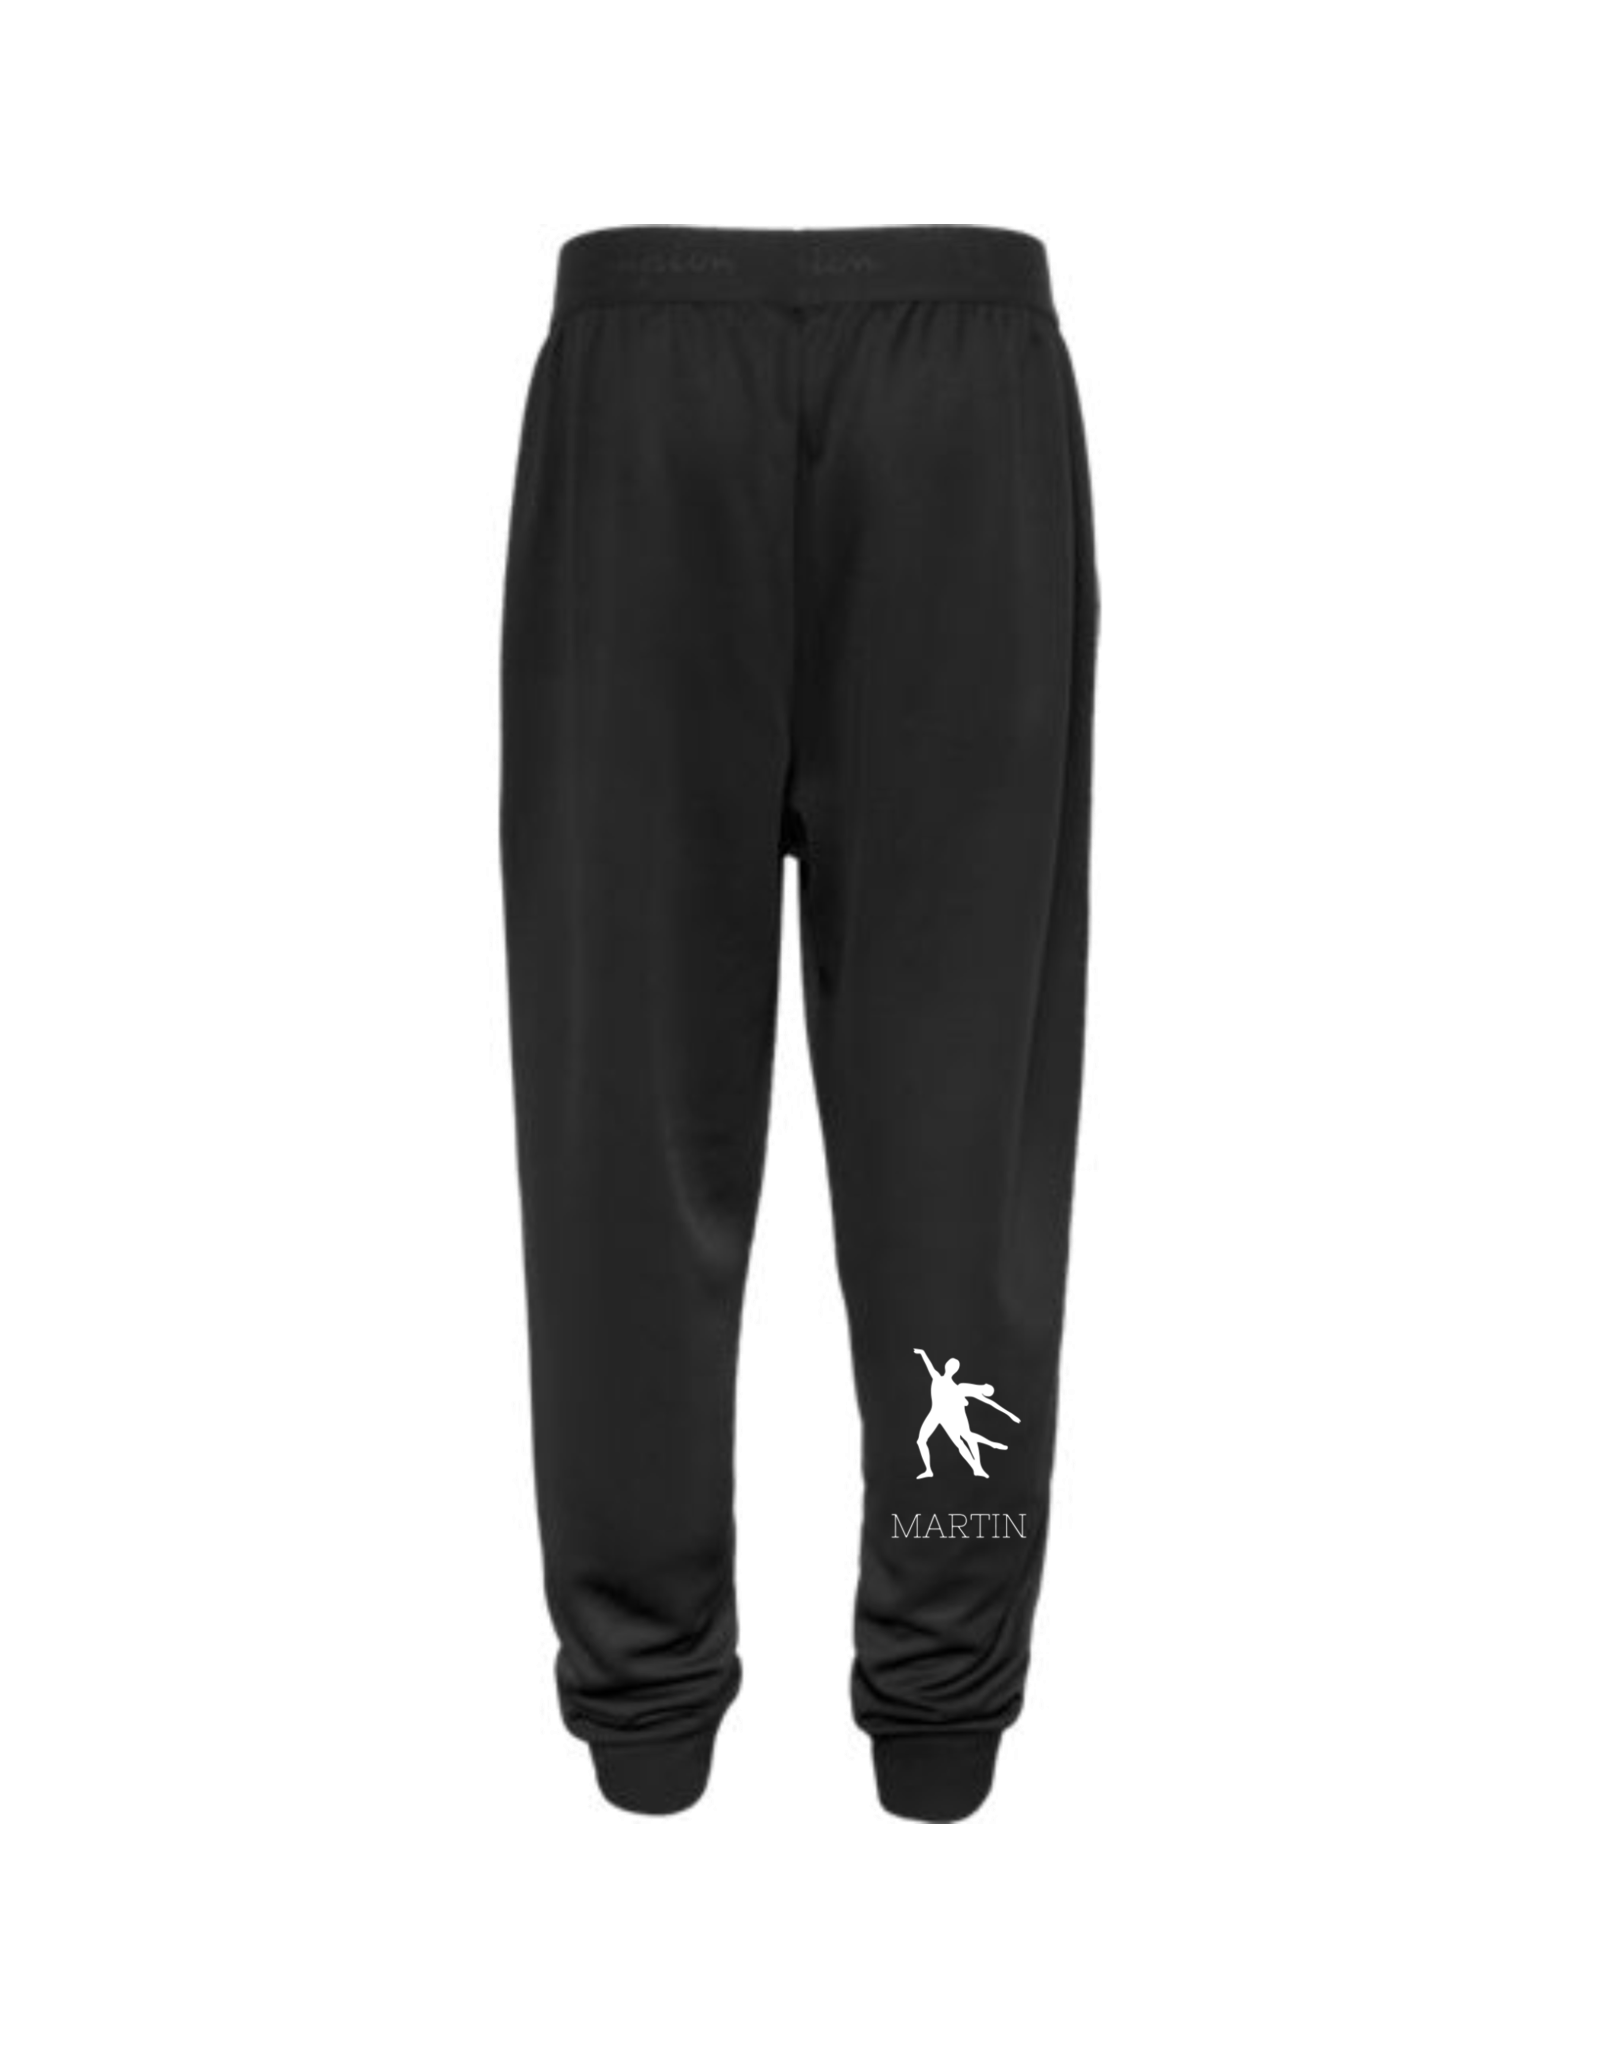 Champion Martin Joggers - Youth